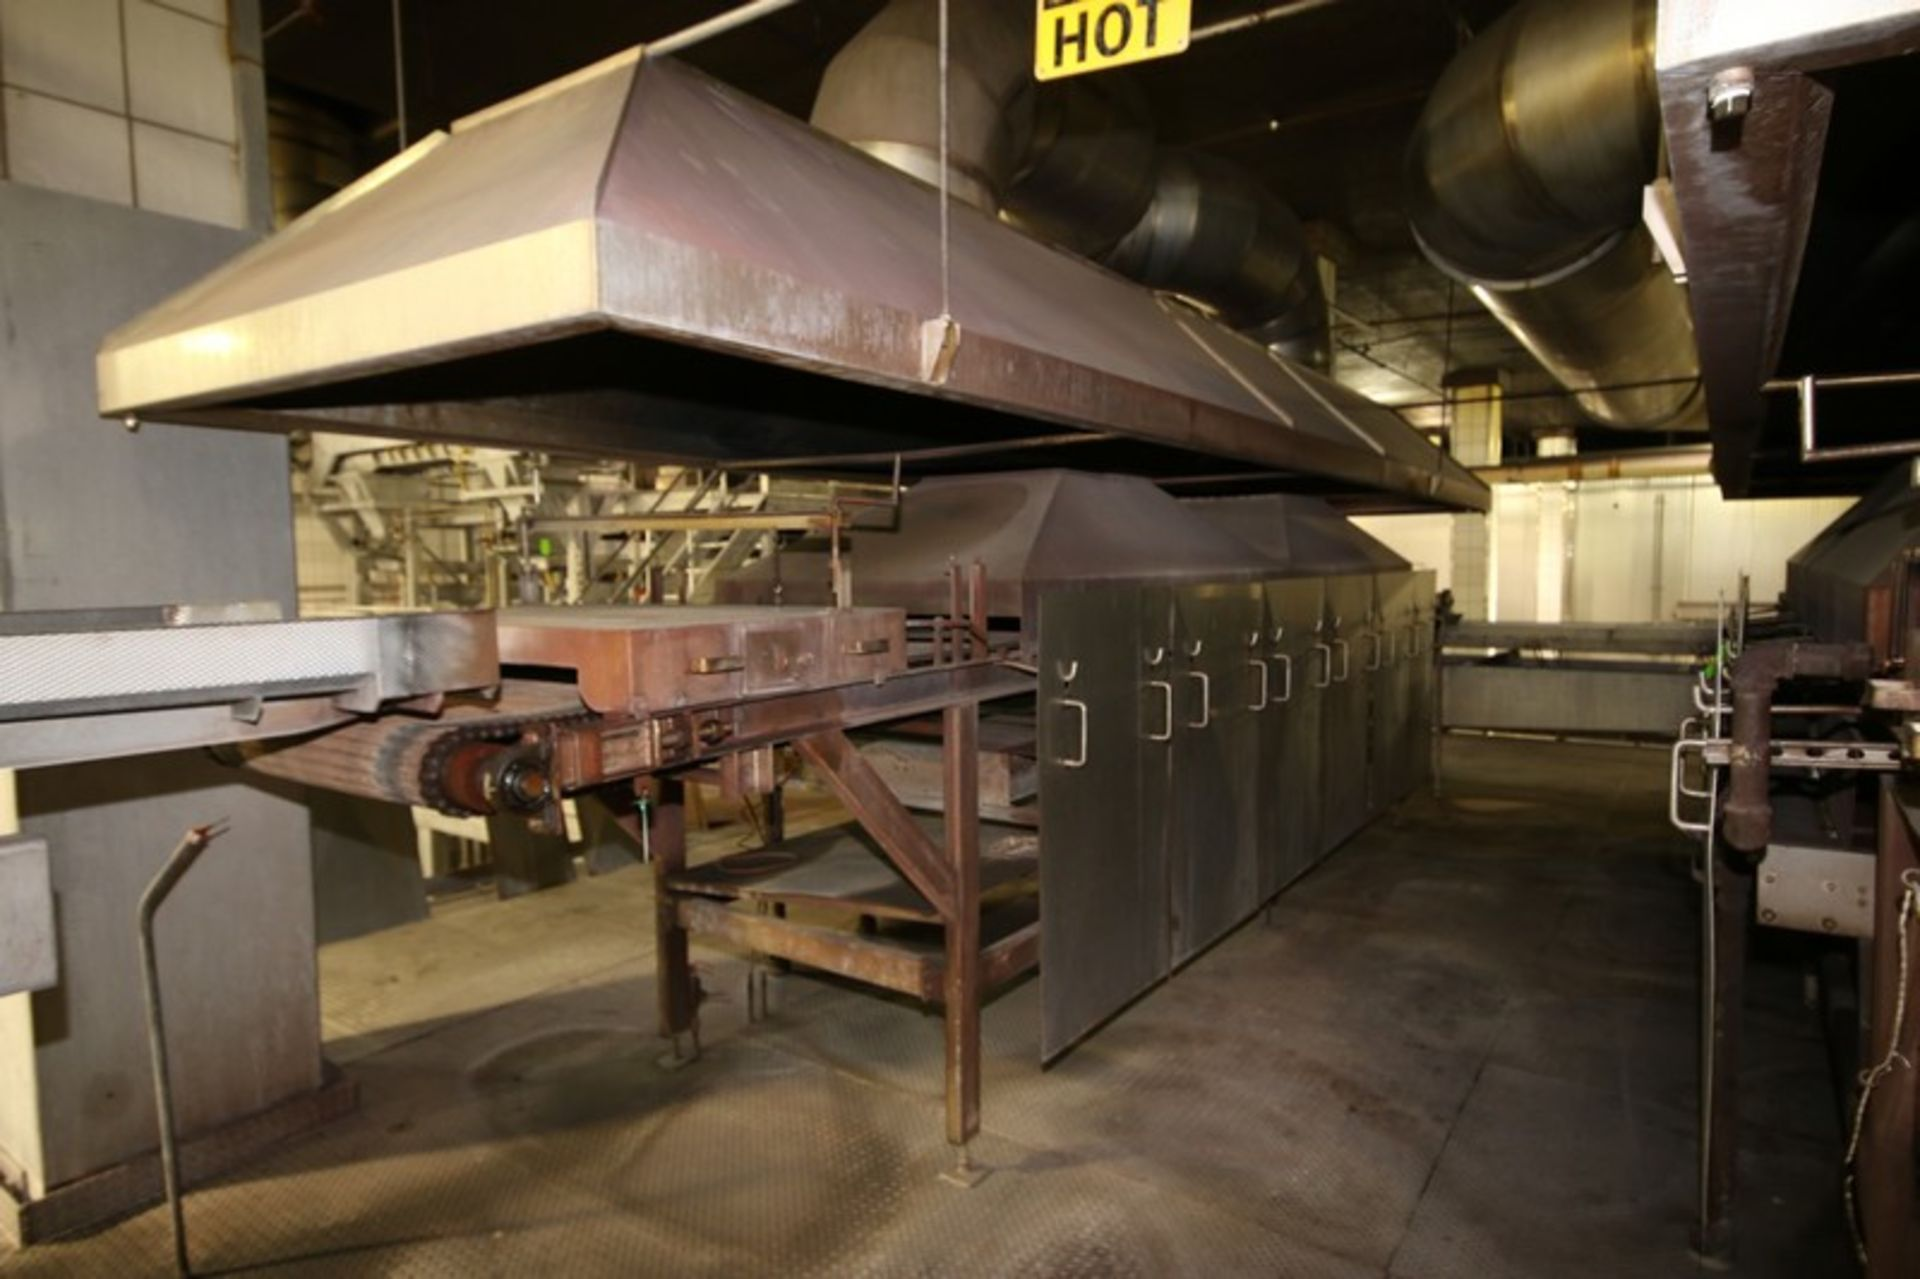 Lot 10 - BULK BID: Key S/S Spreader Shaker Feed System, with Natural Gas Roaster #3, Includes Lots 11 & 12